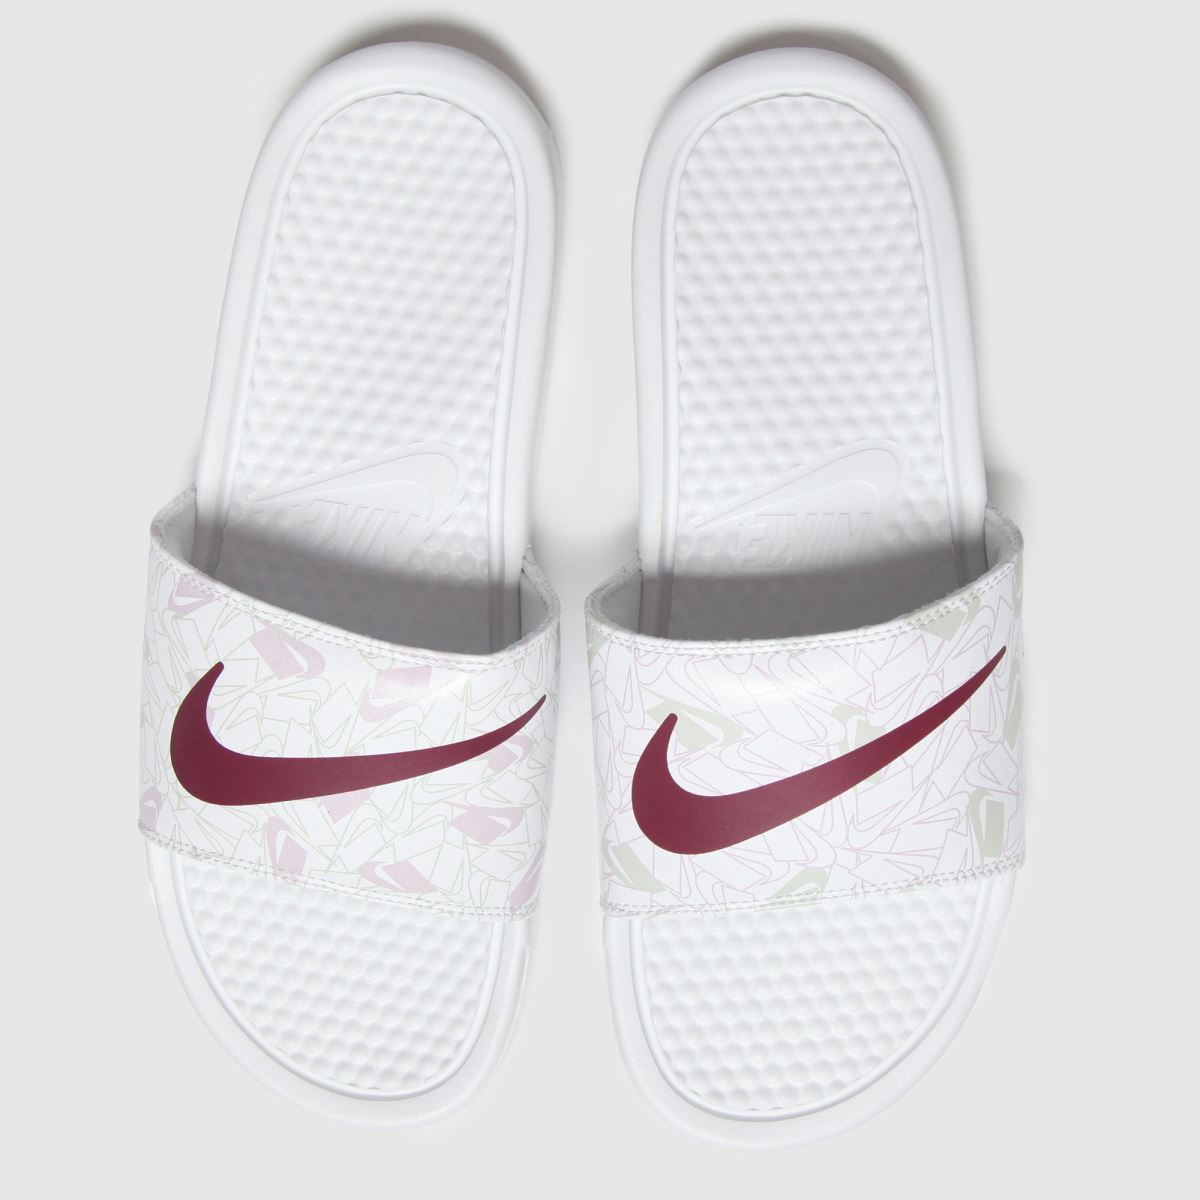 Nike Nike White & Red Benassi Jdi Sandals